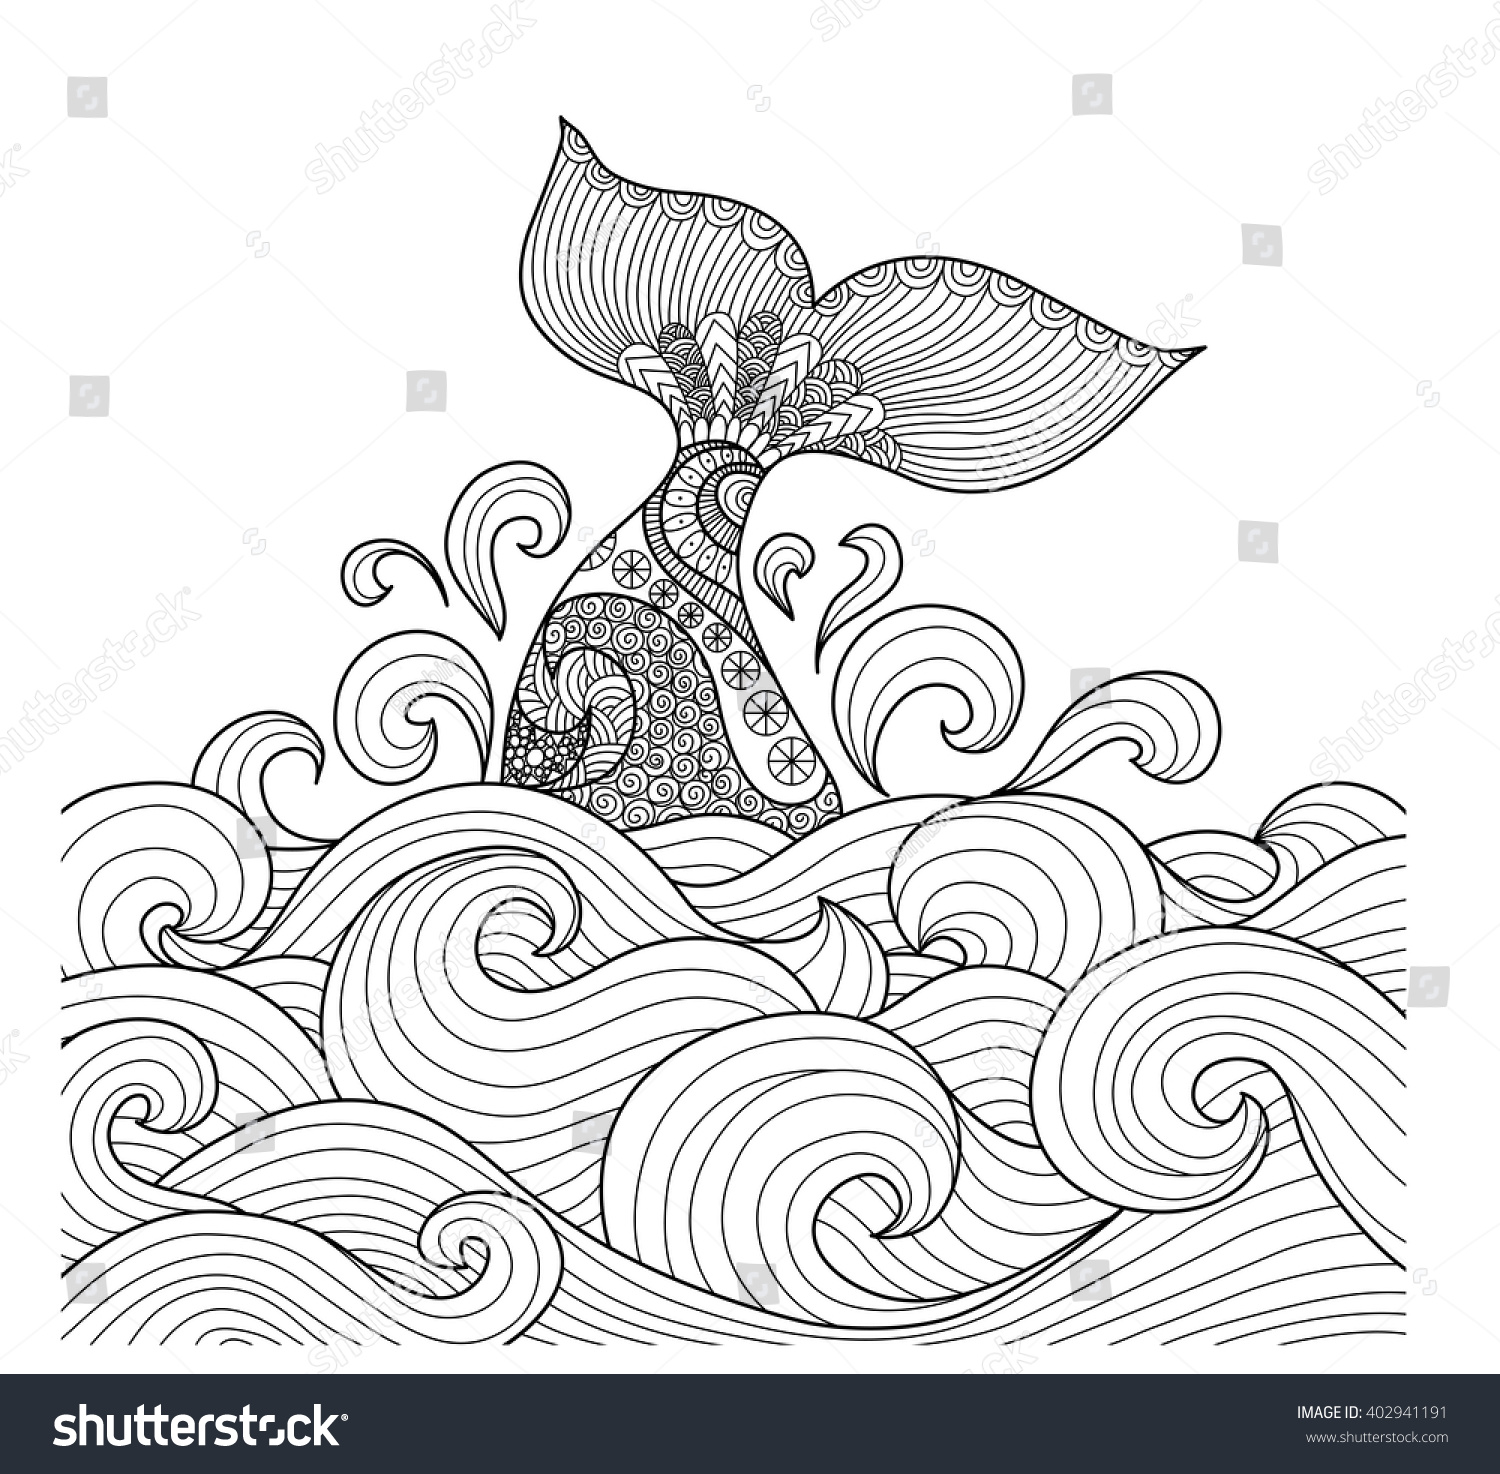 Art In Lines : Whale tail wavy ocean lines art stock vector